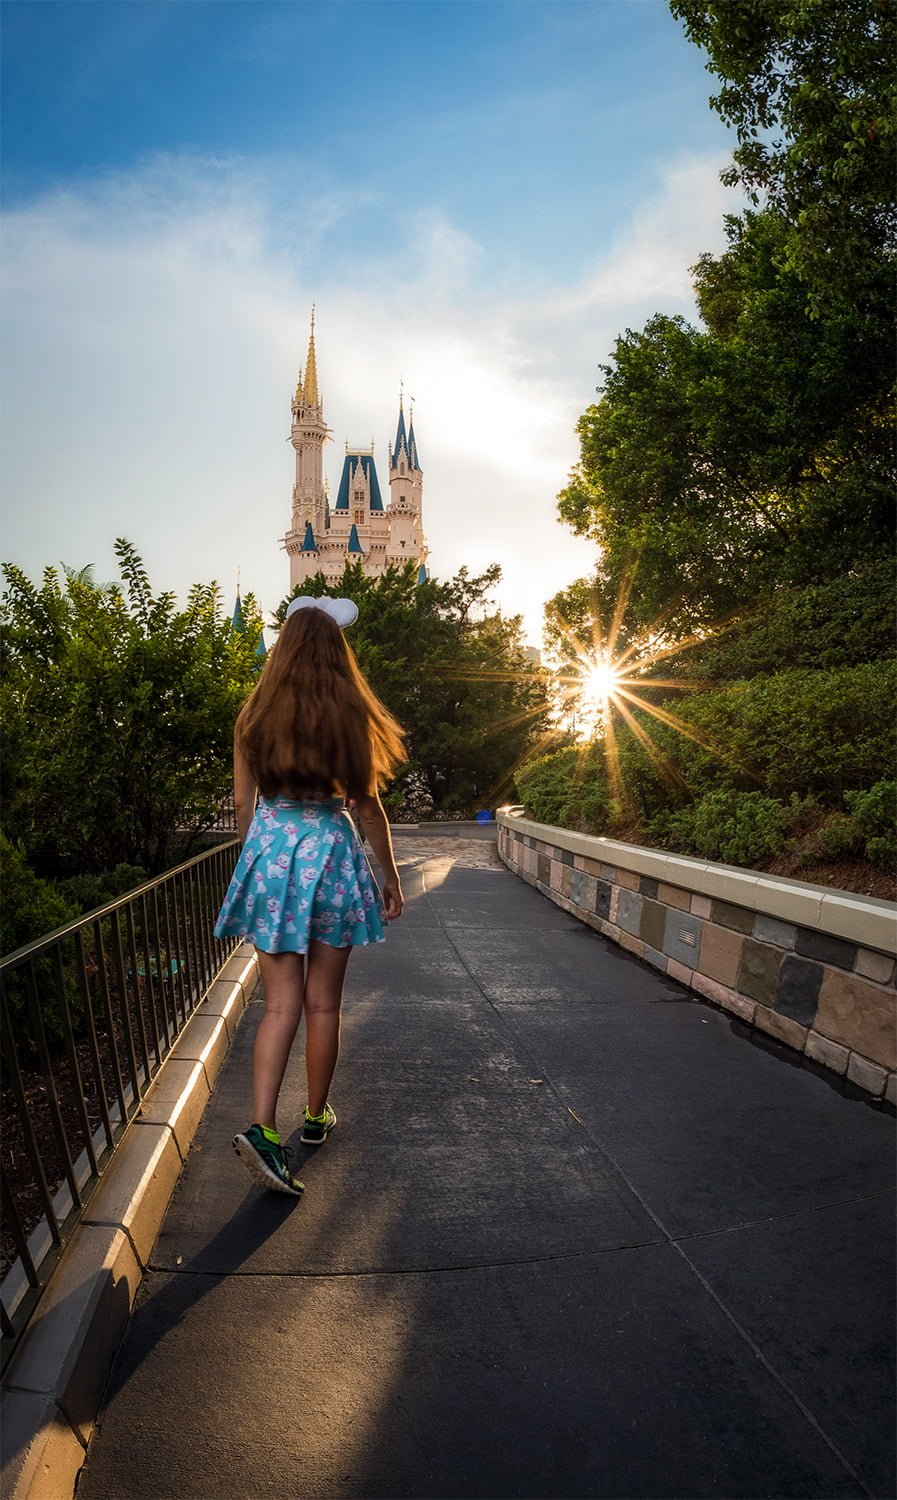 1-Day Magic Kingdom Ideal Day Plan - Disney Tourist Blog